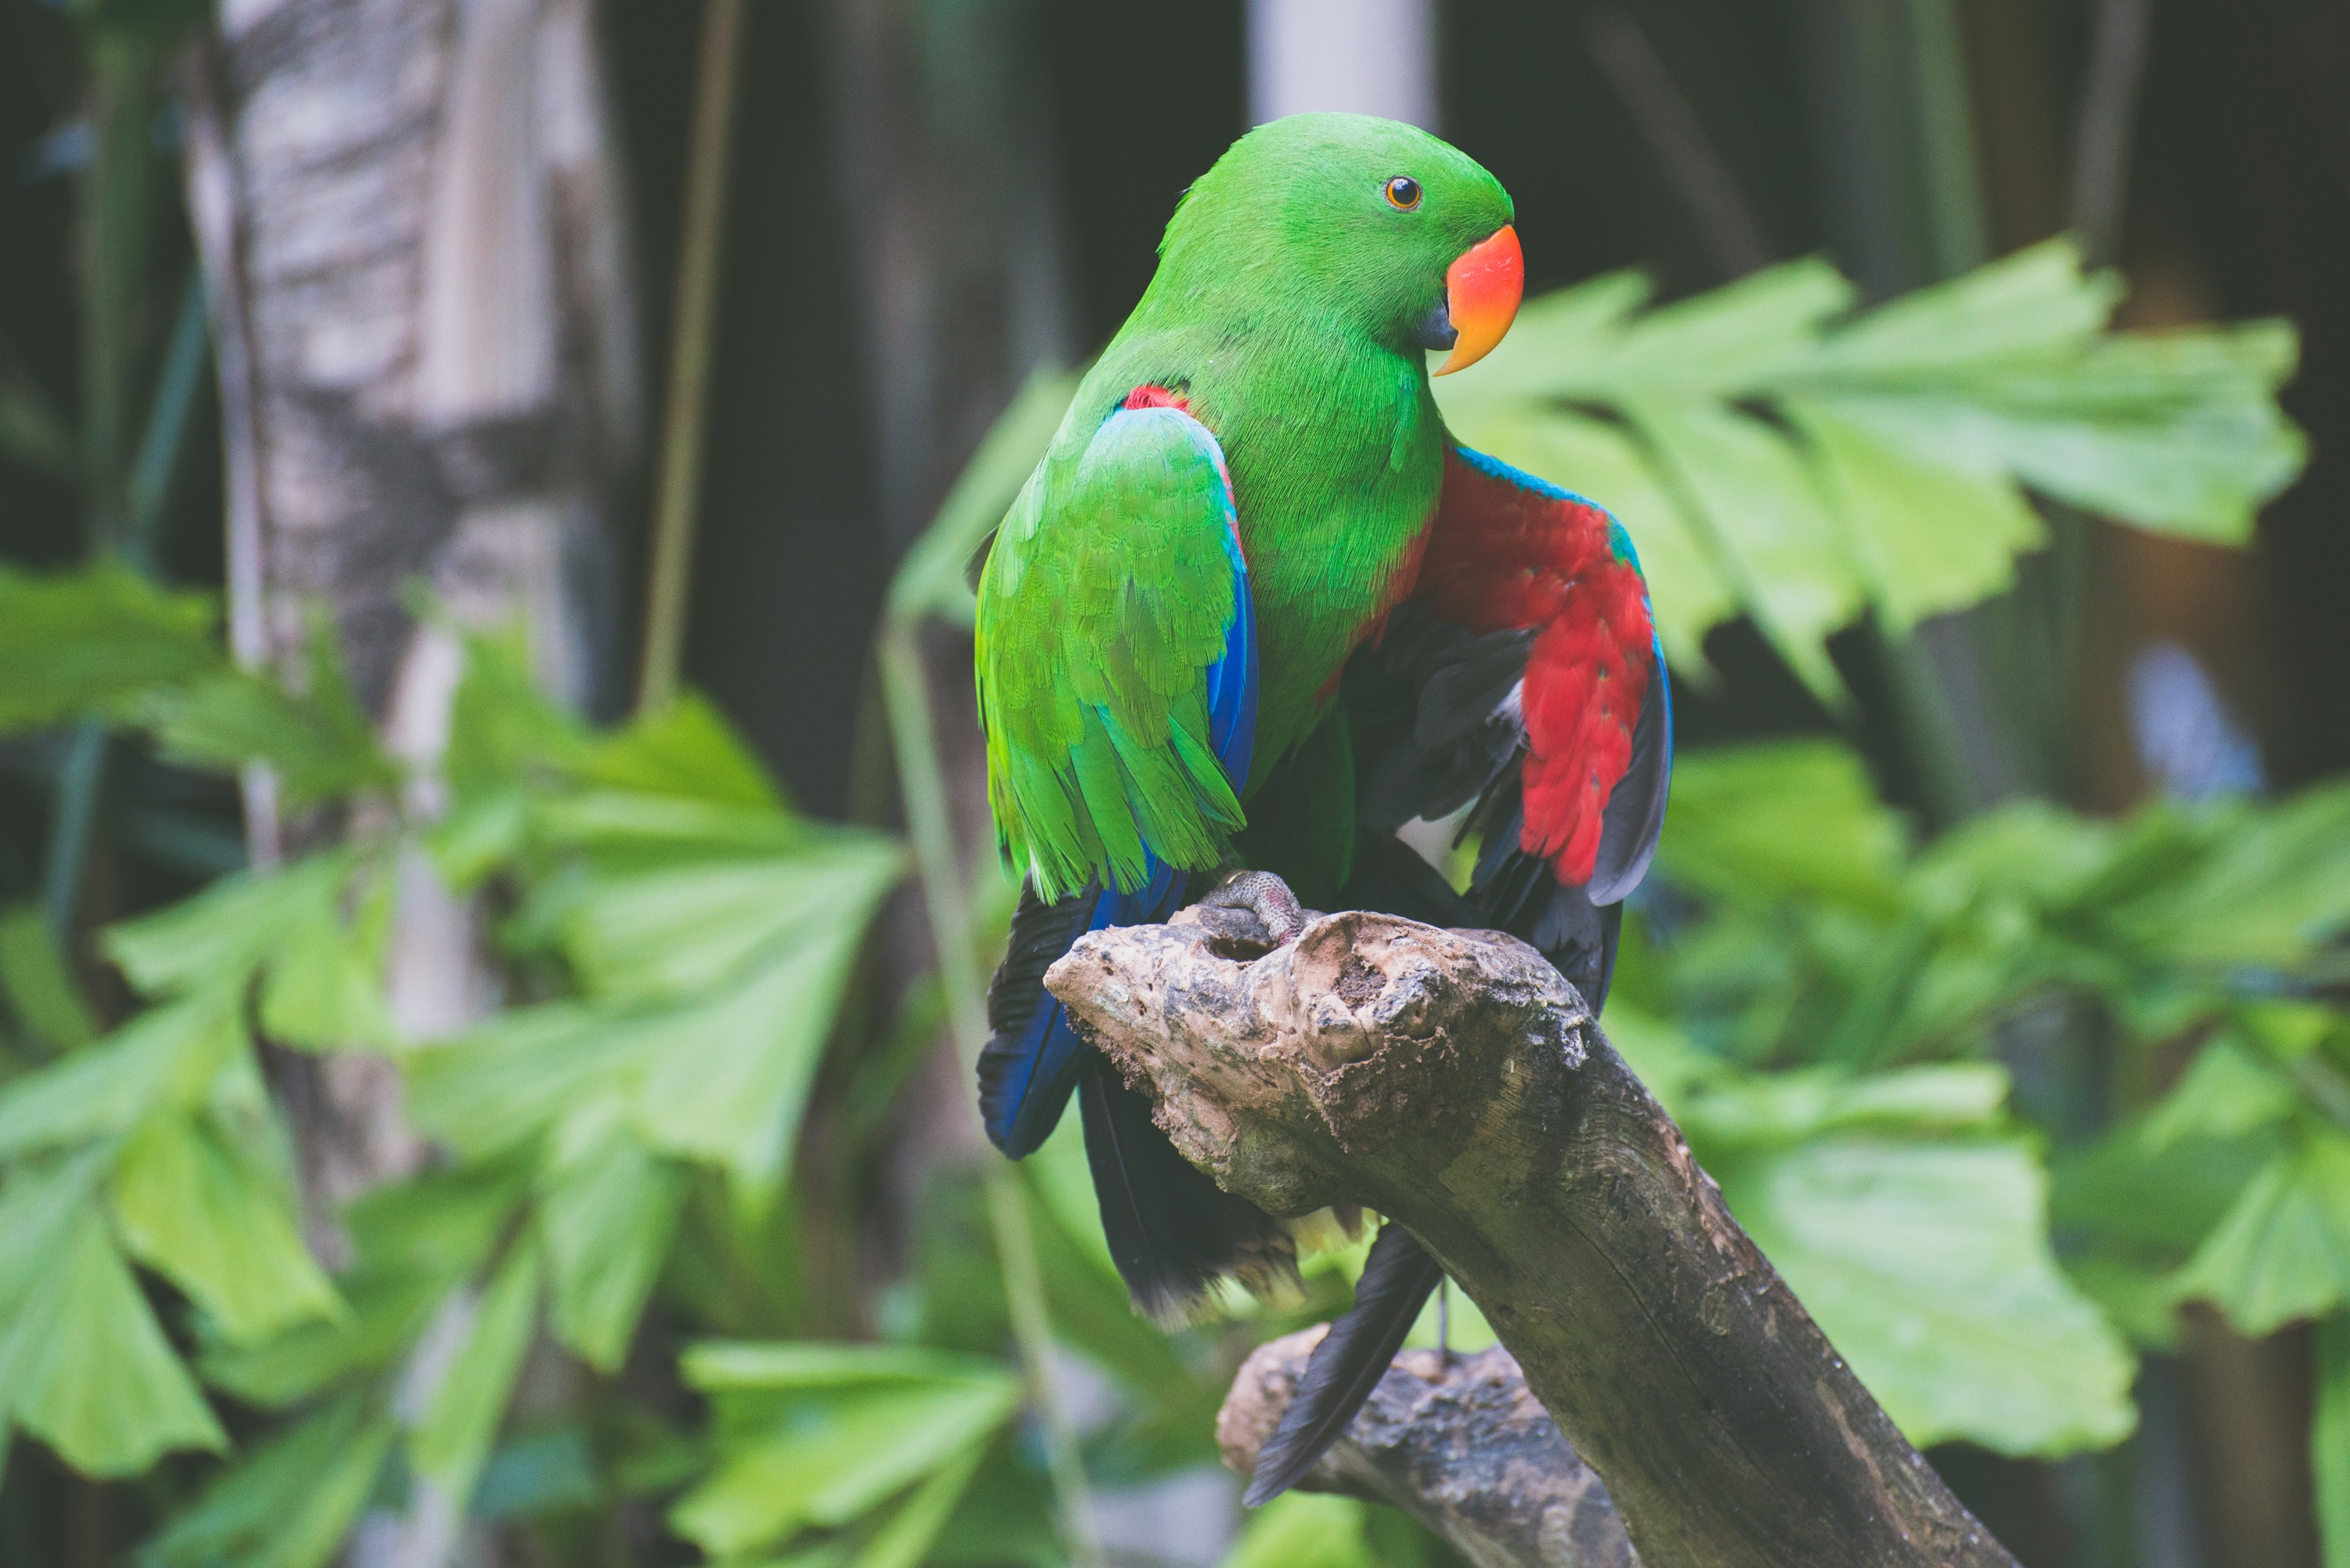 Green parrot with an orange beak perched on a branch